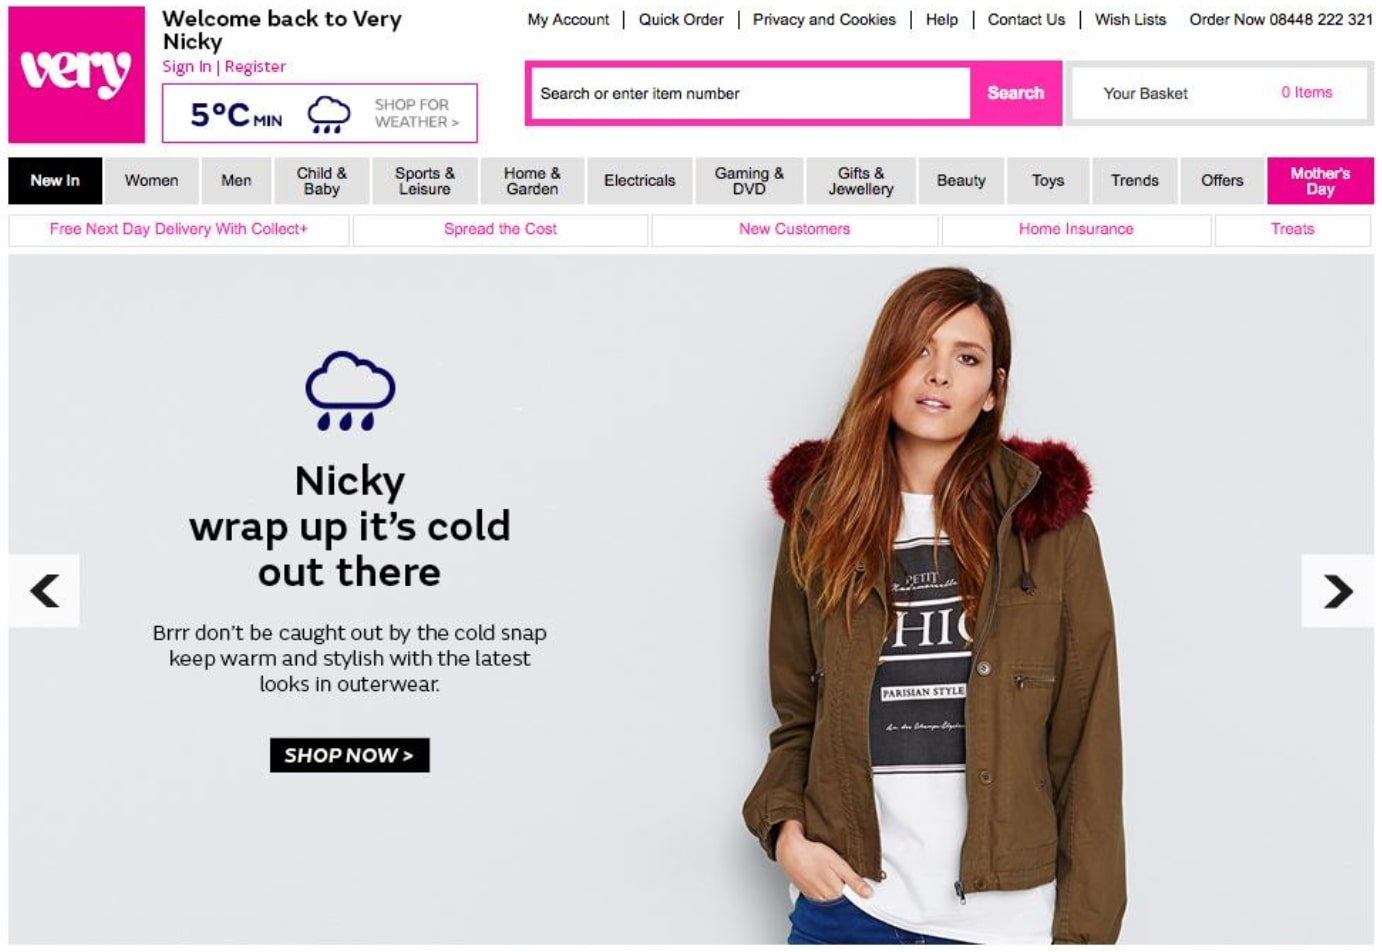 screenshot of verys website showing personalized message about clothing to wear with the weather a customer has